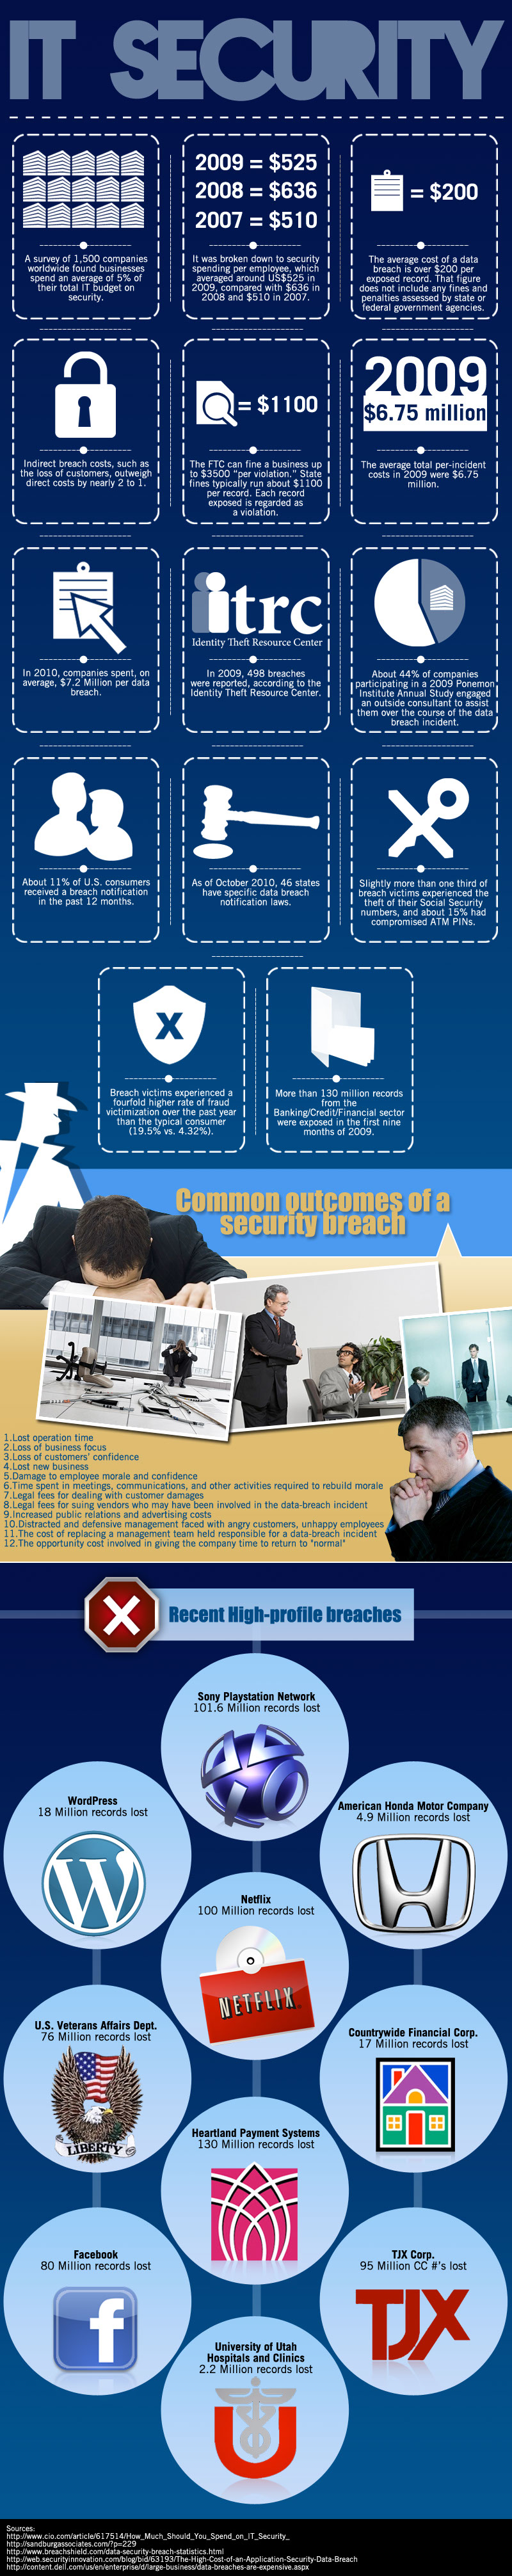 IT Security Breaches-Infographic